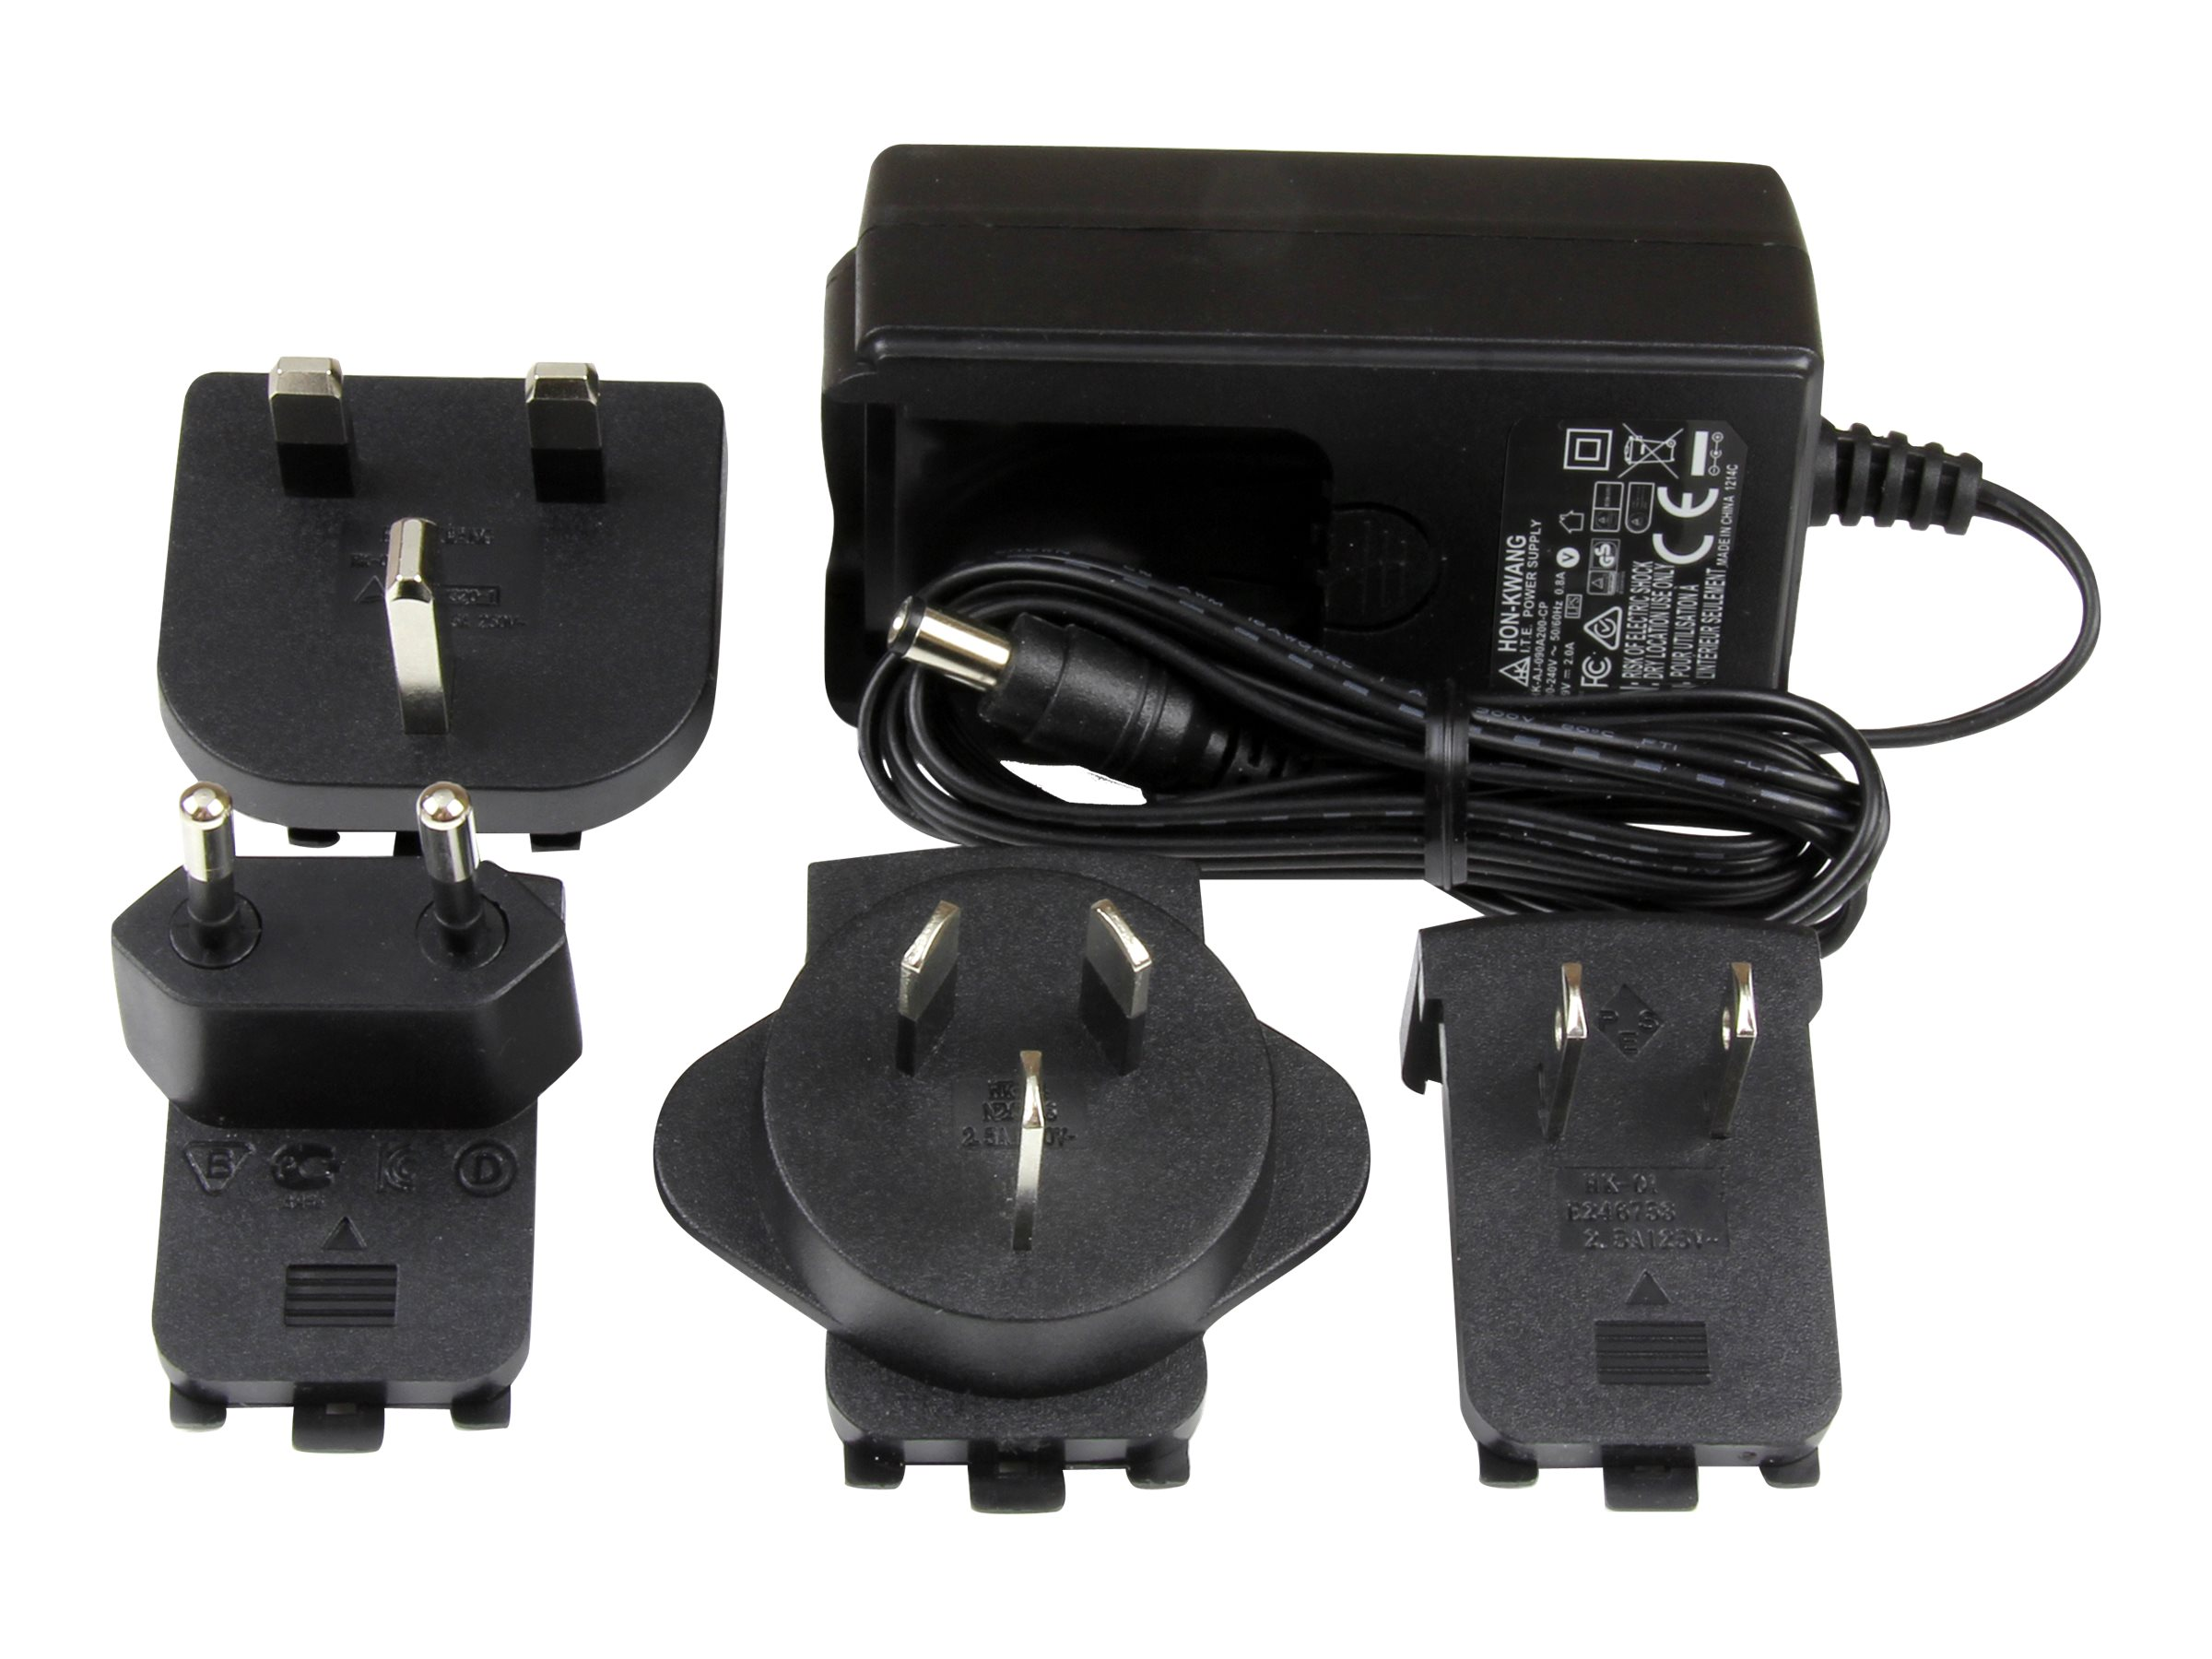 StarTech.com DC Power Adapter 9V, 2A